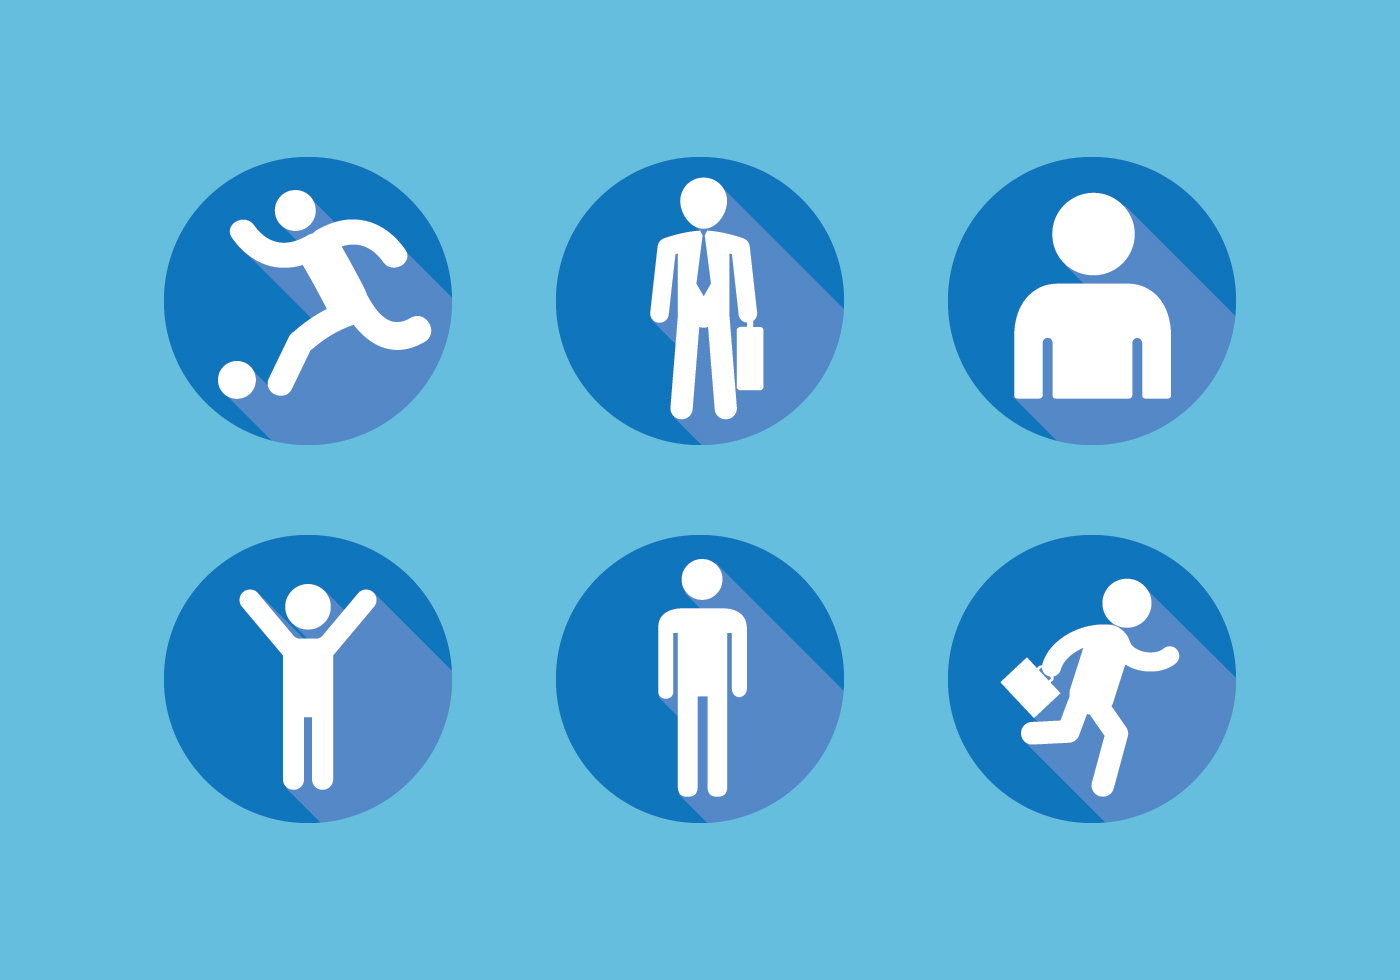 man icon set download free vector art stock graphics